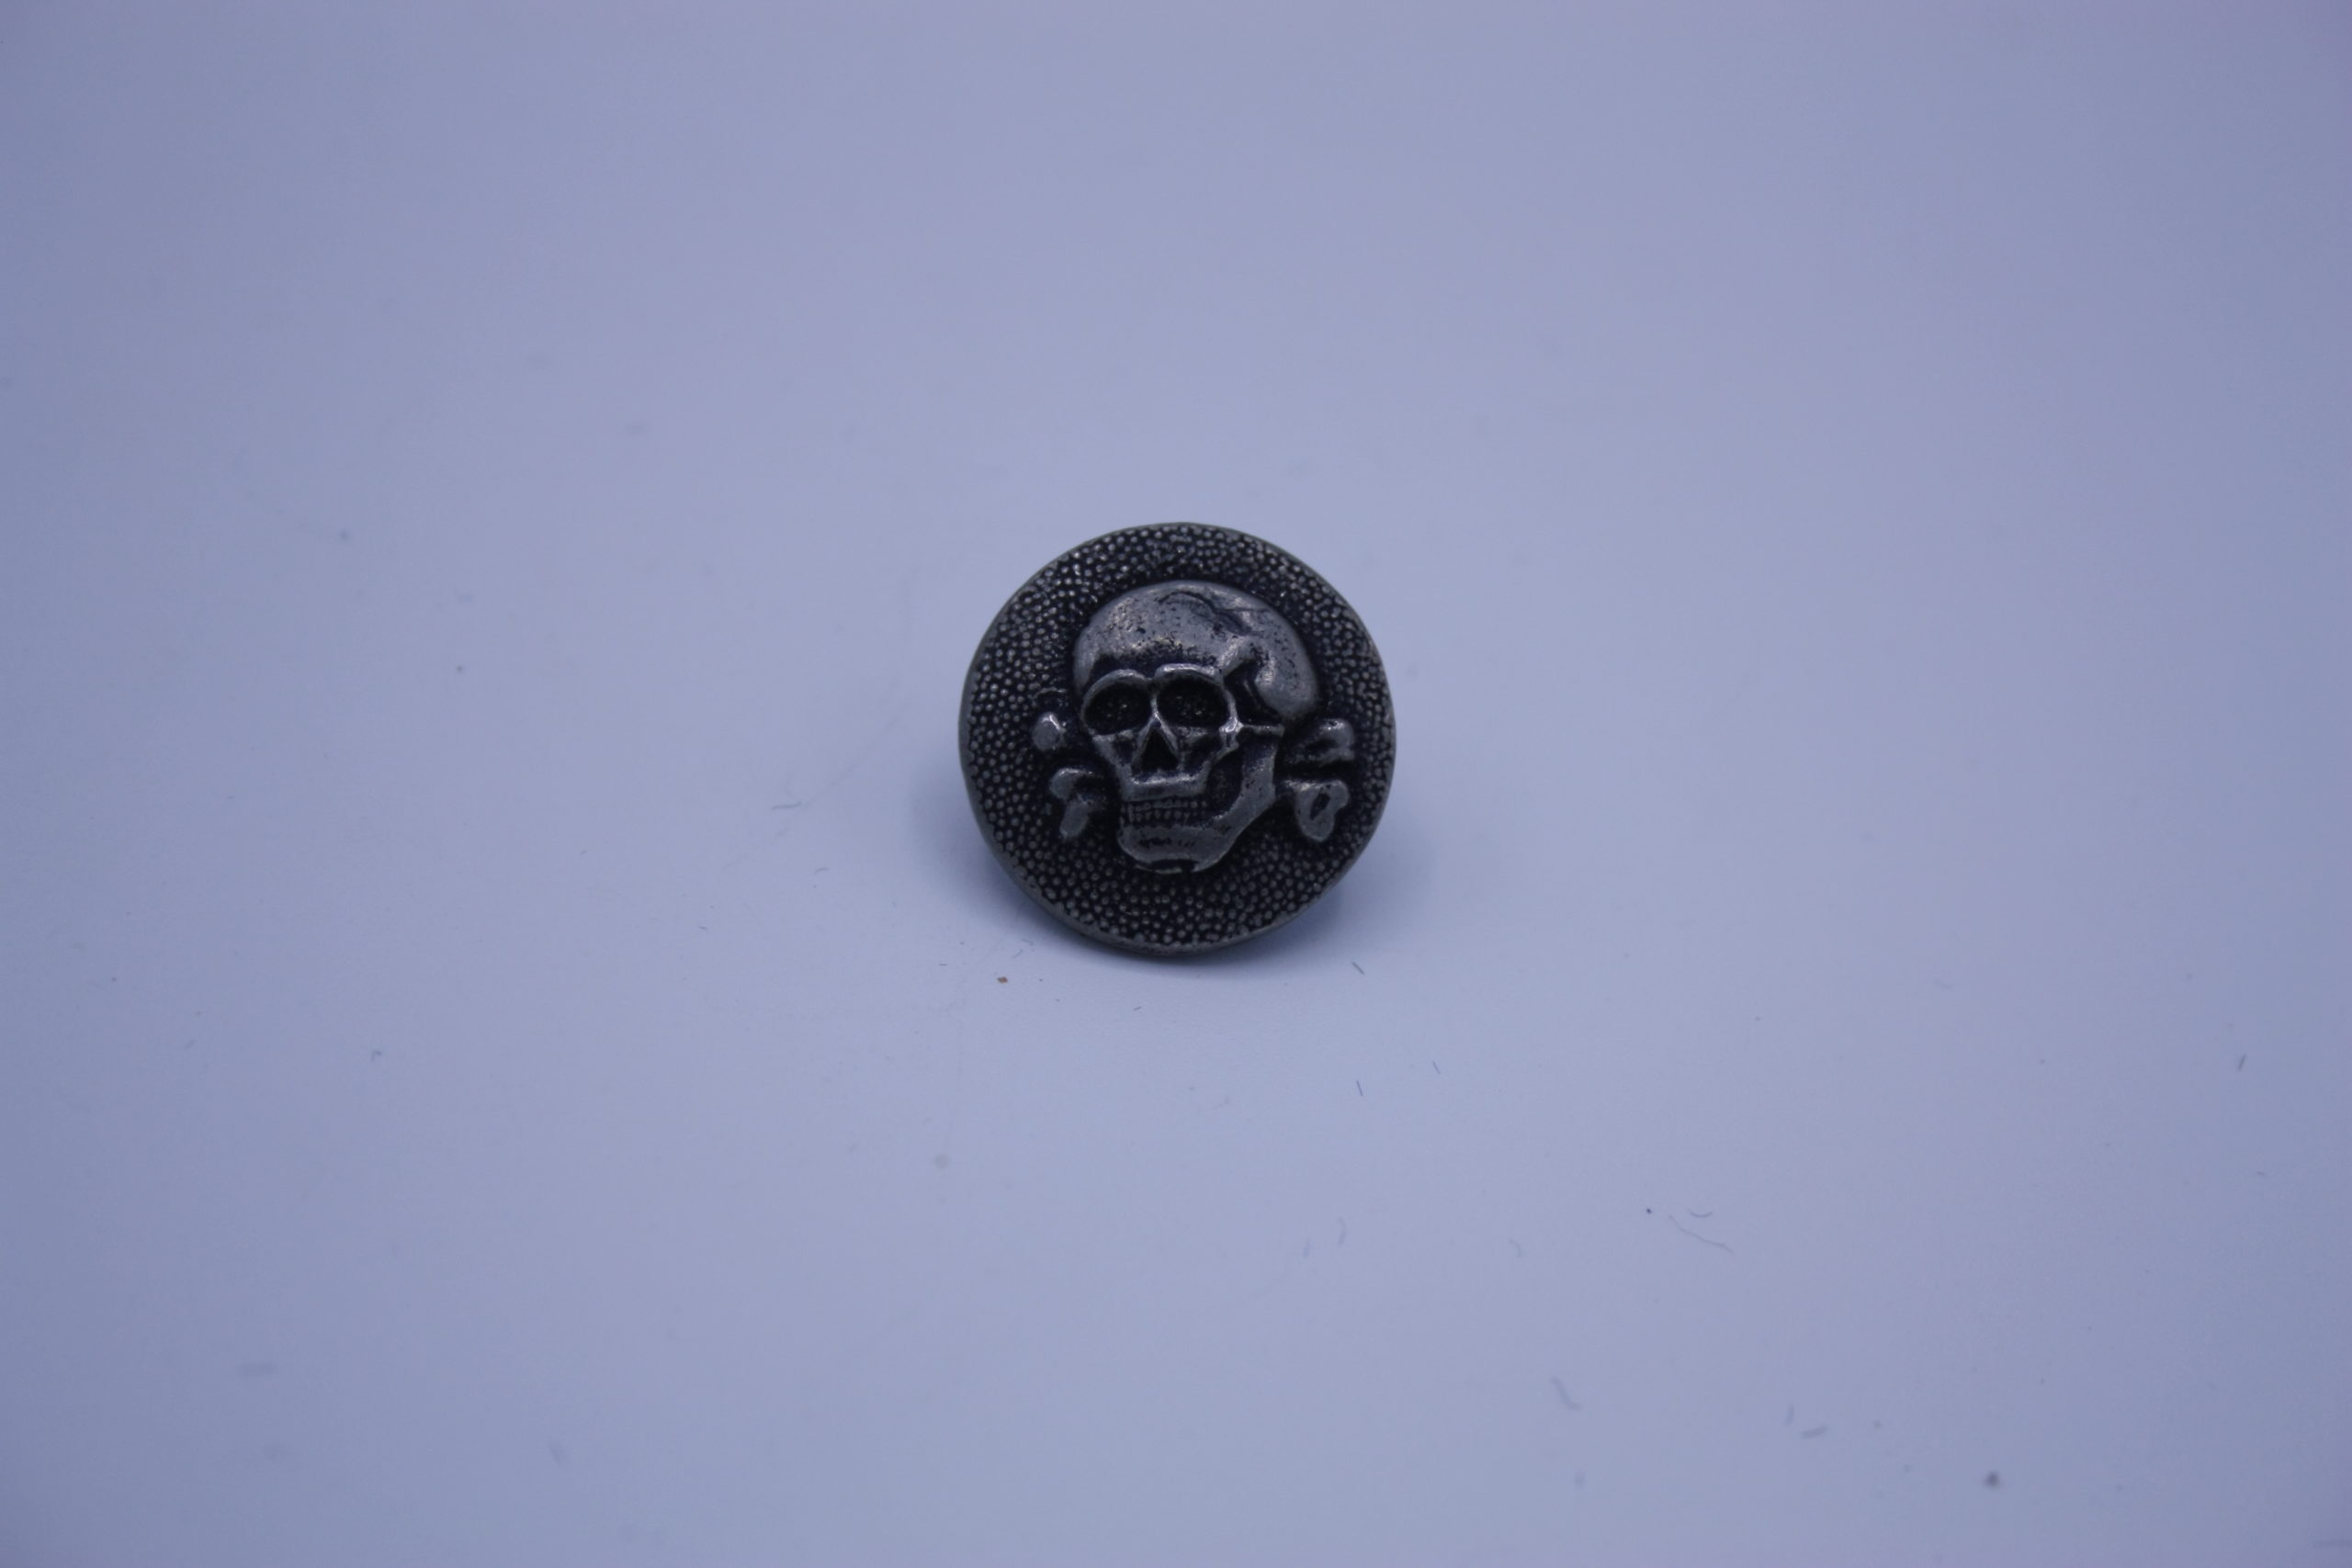 Militaria - Bouton - Allemagne - SS - RZM - Buttom